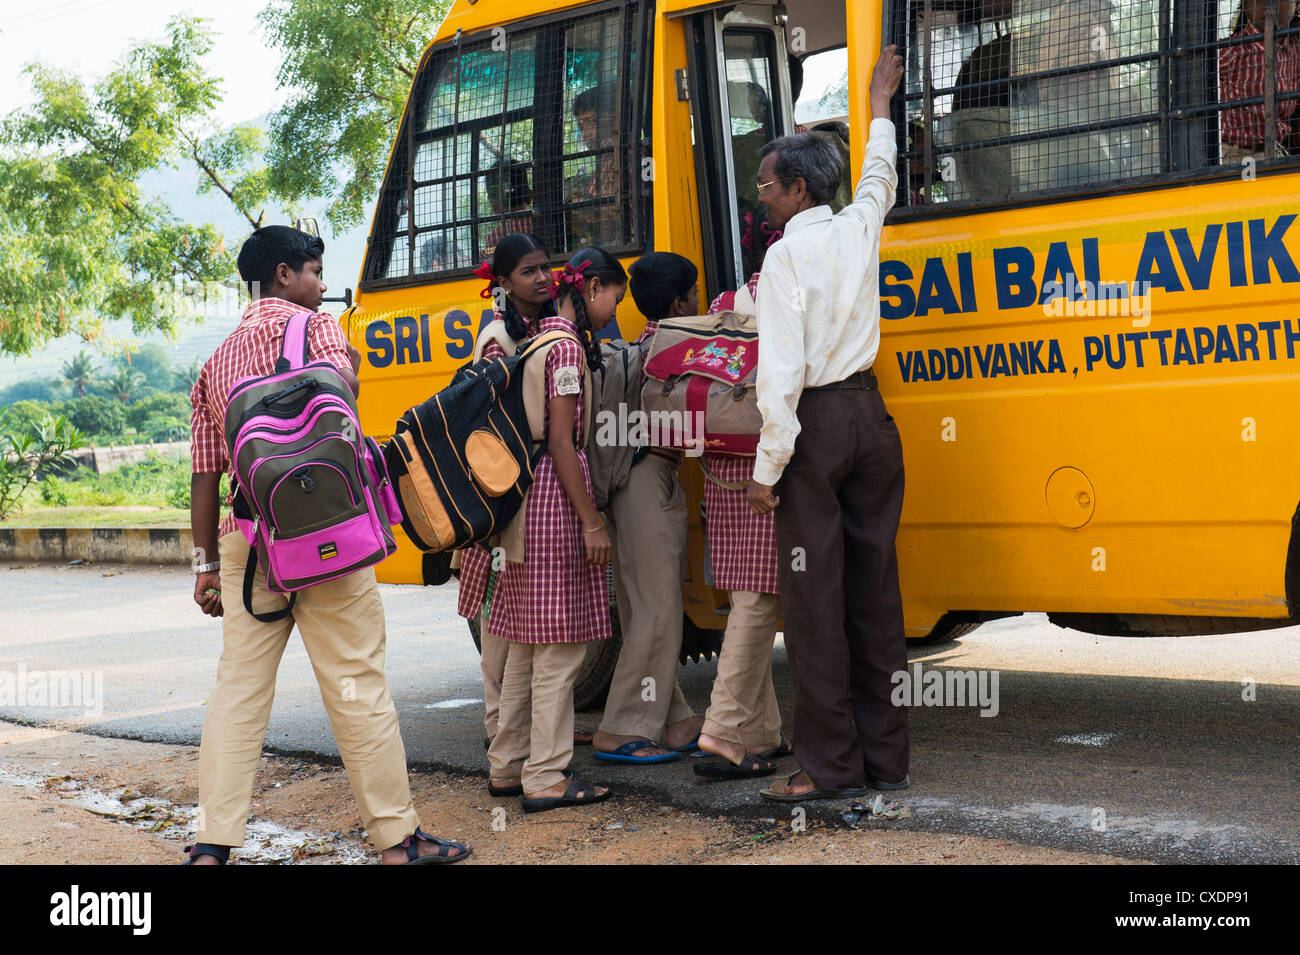 Indian School Children Getting On A School Bus Being Supervised By